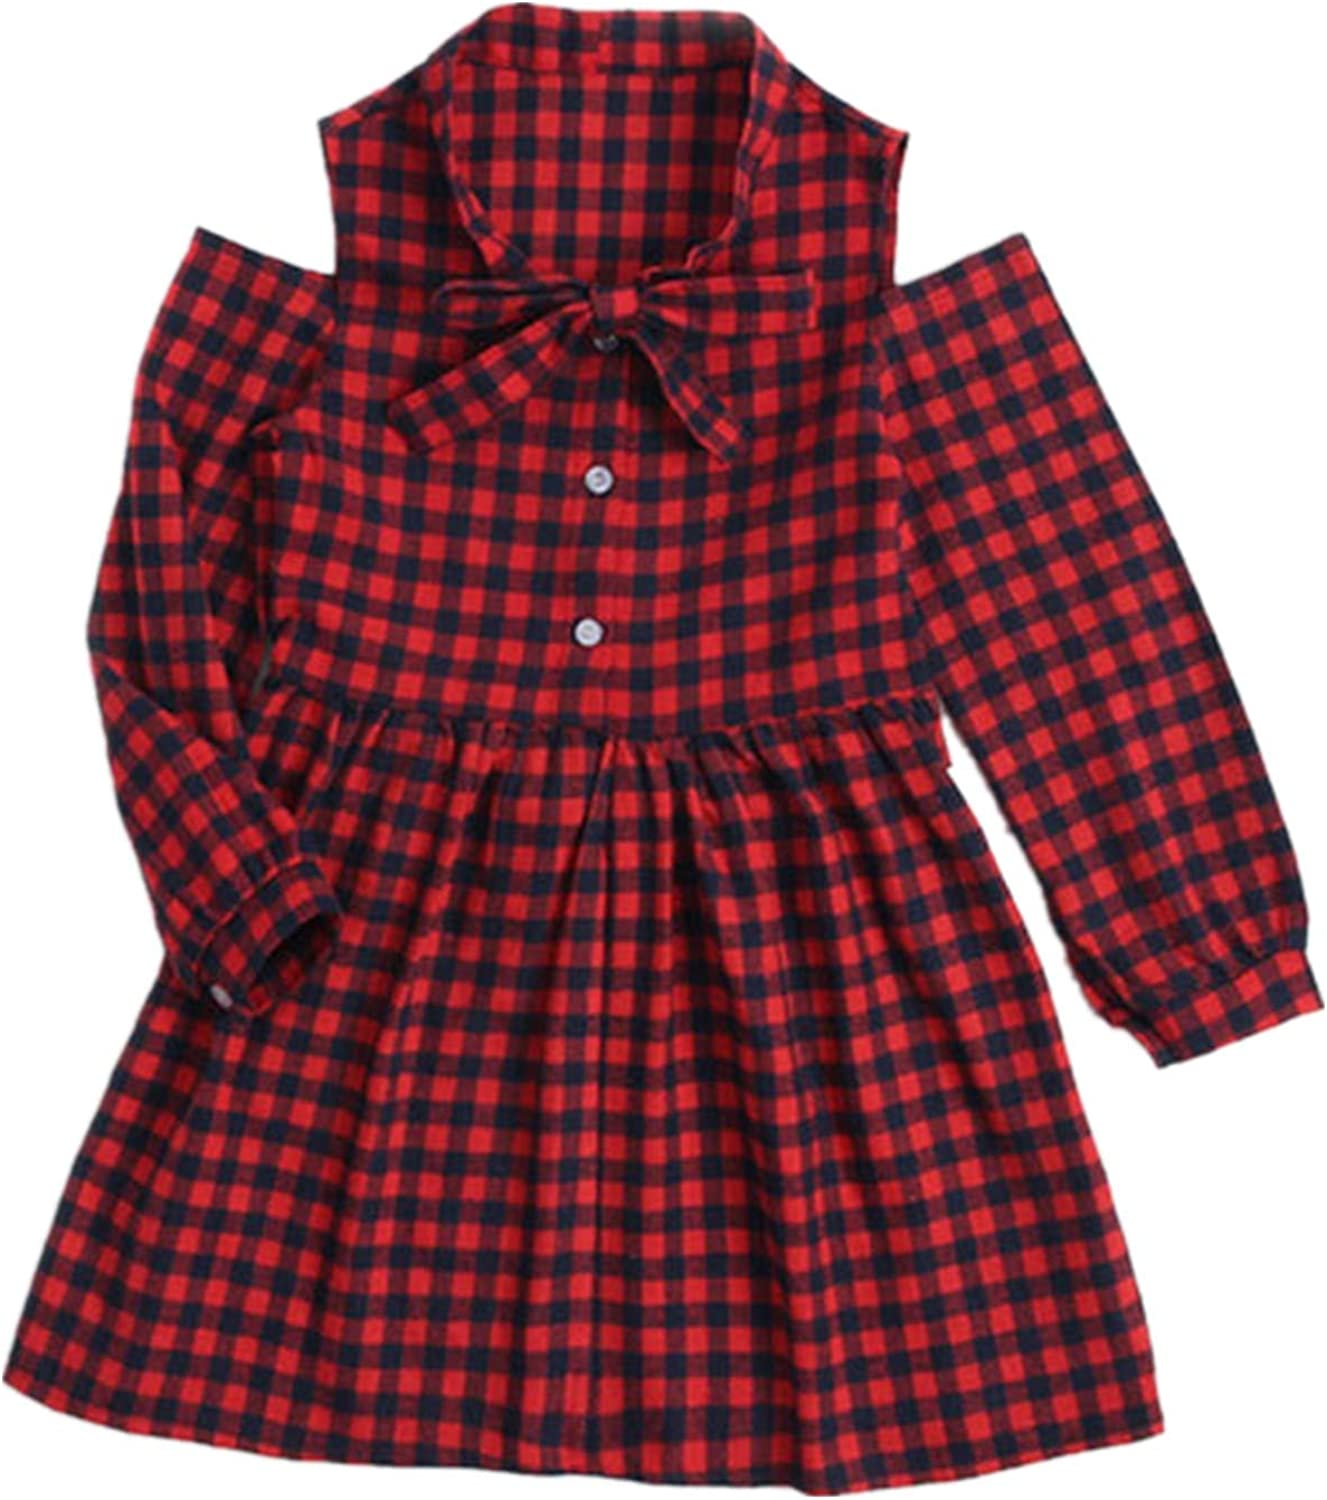 Toddler Challenge the lowest price Baby Girl Red Plaid Ruffle Clothe Indefinitely Christmas Dress Romper